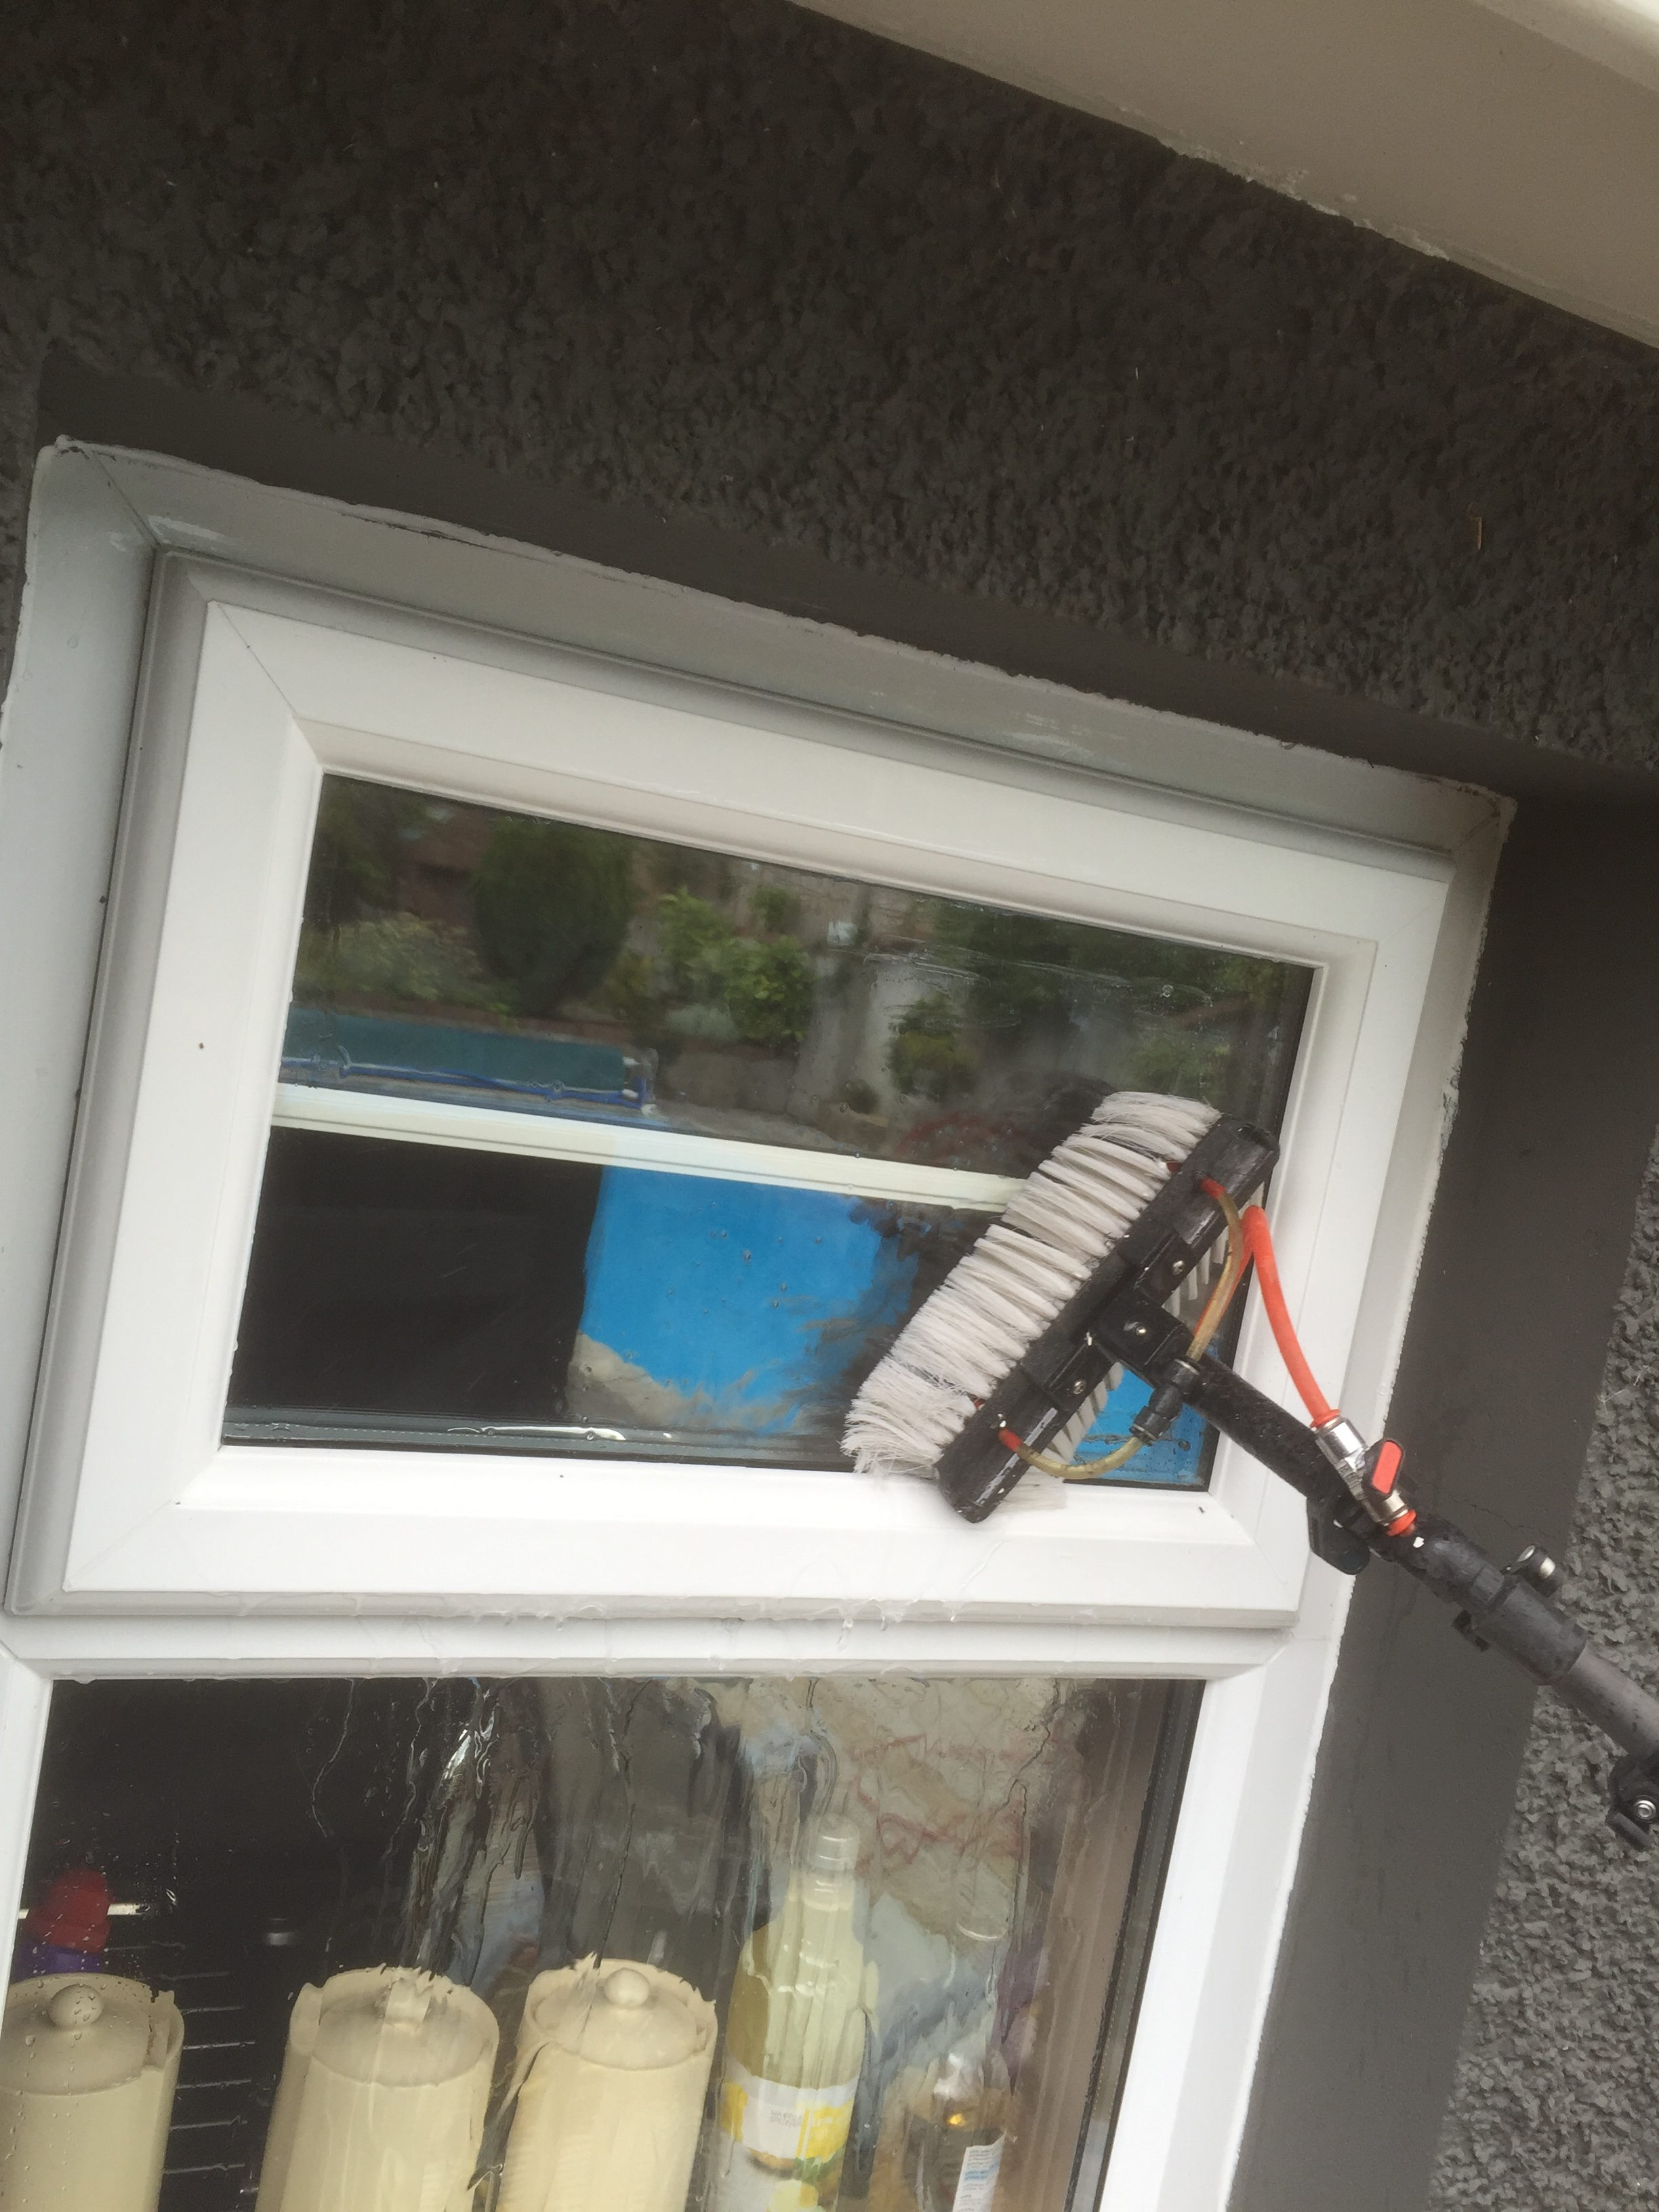 window cleaners window cleaning upvc window